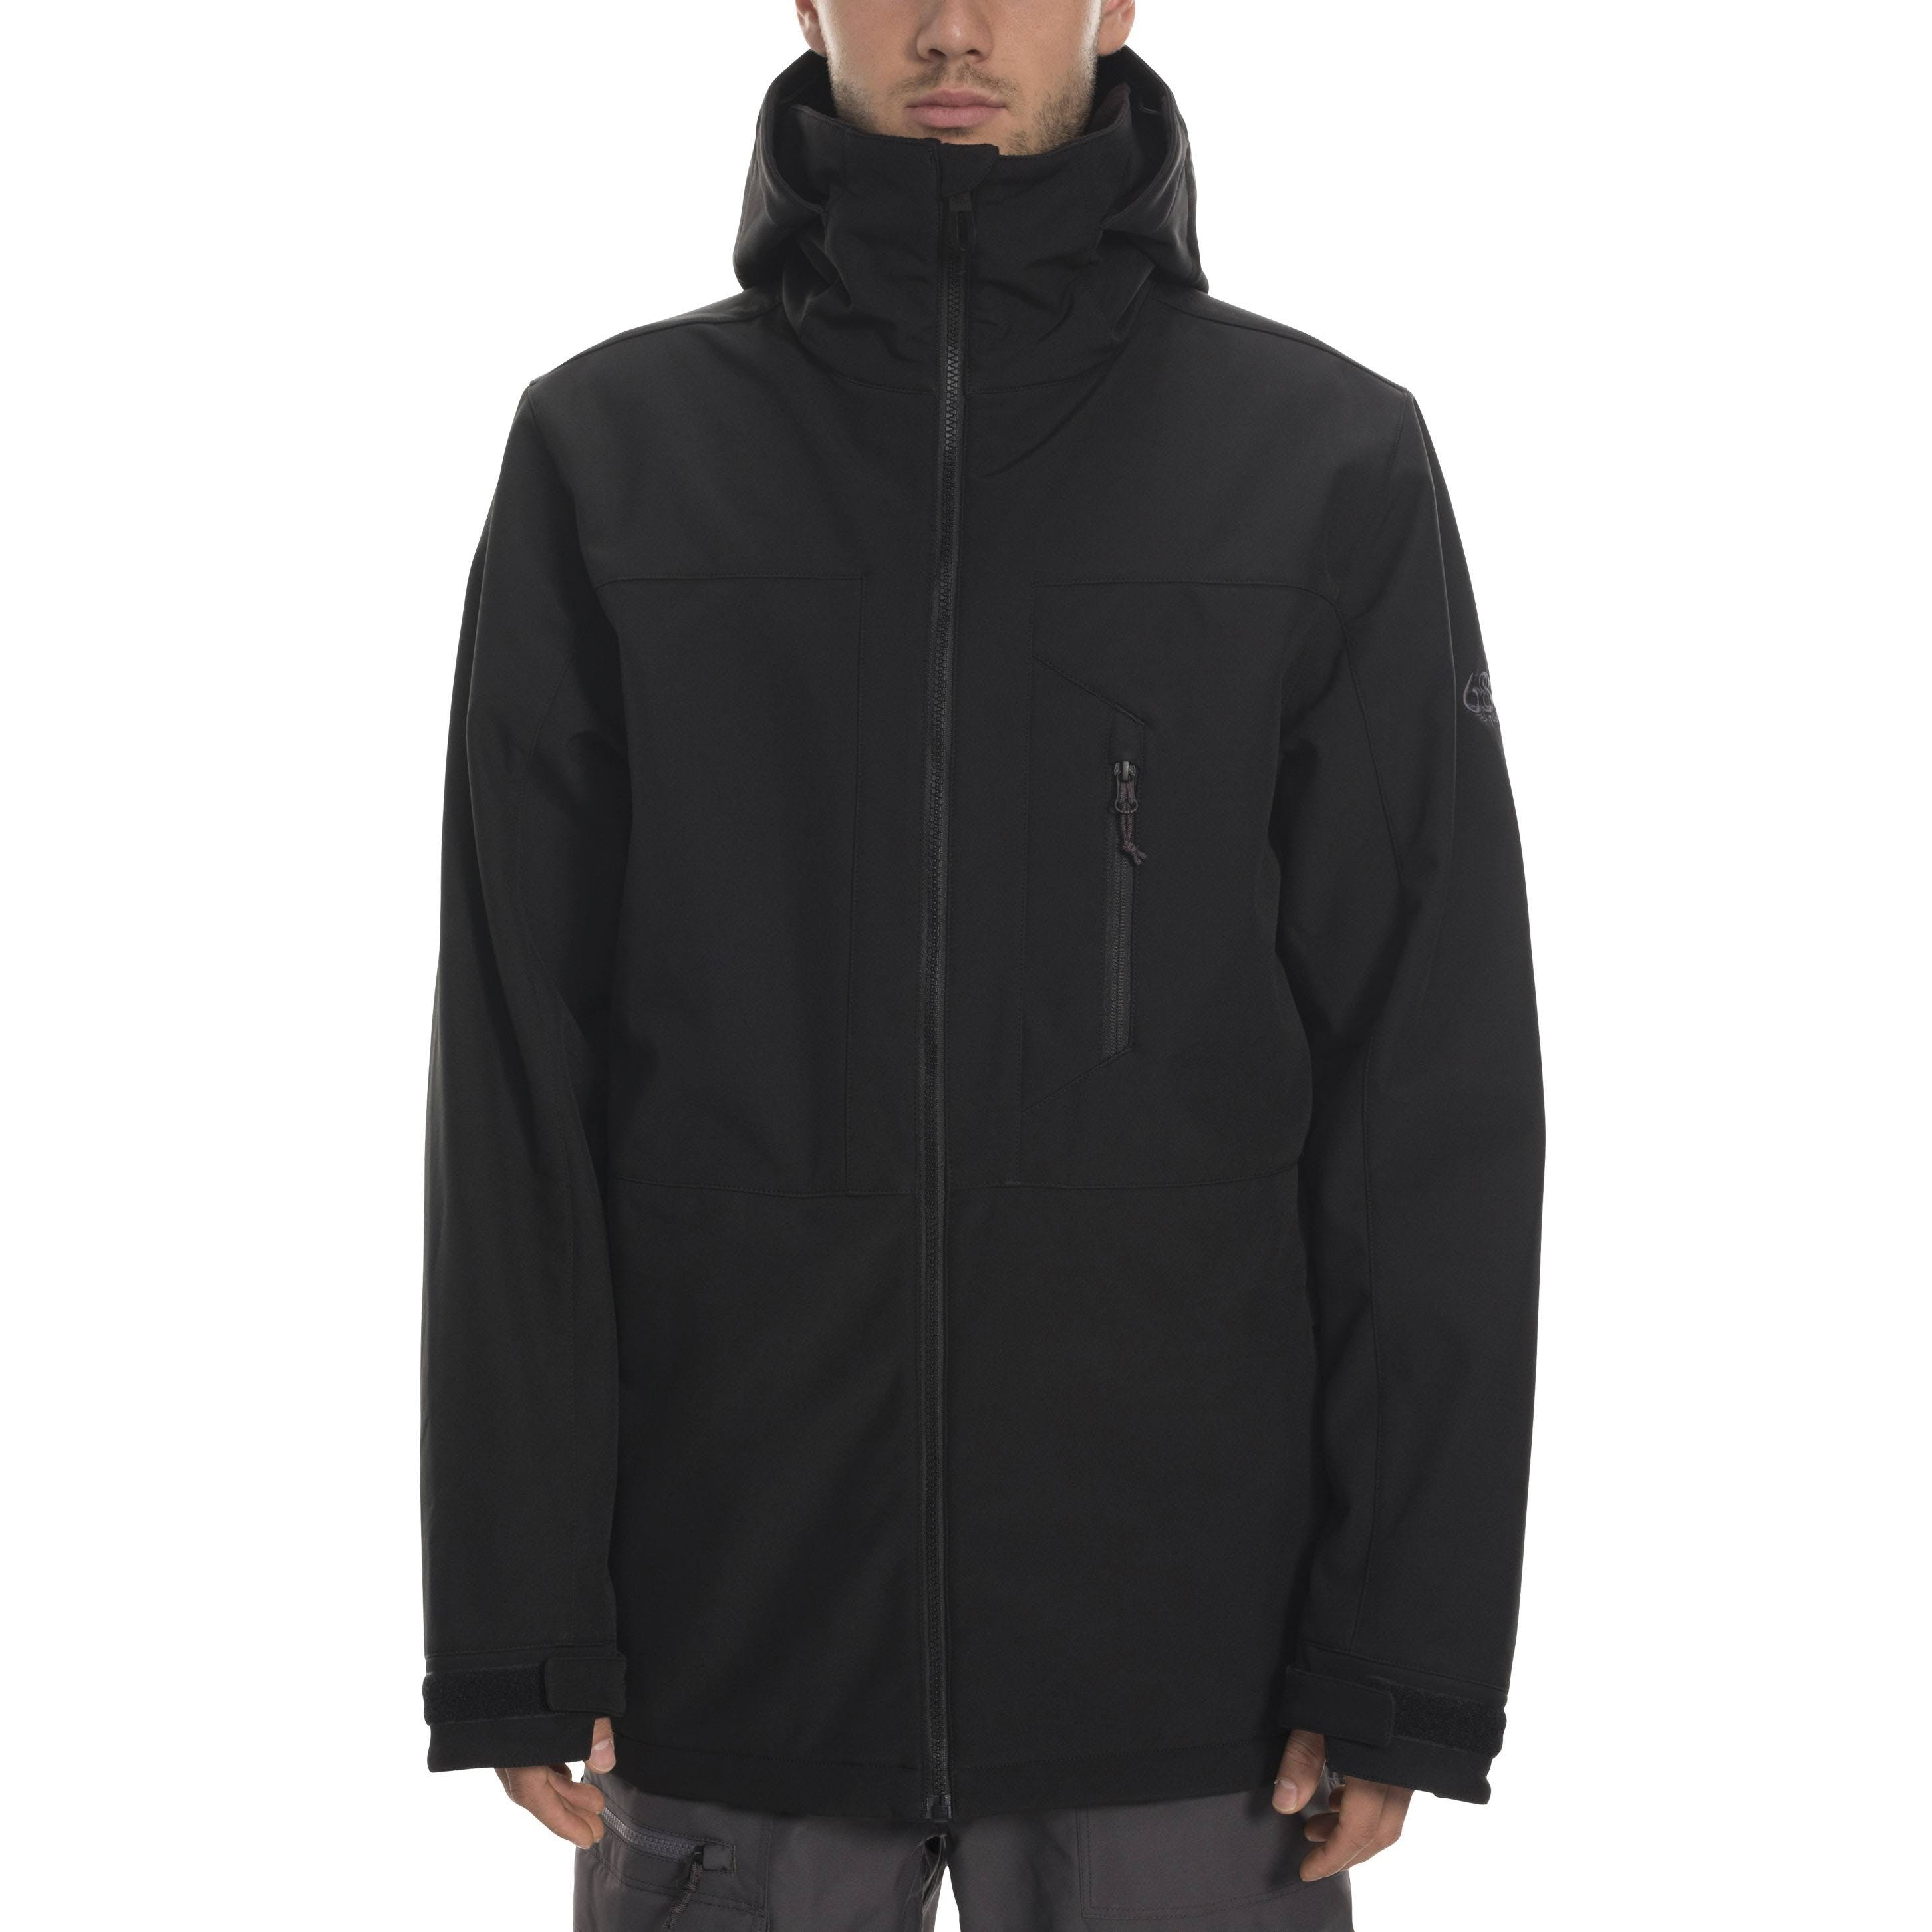 686 Smarty Phase 3 In 1 Softshell Snow Jacket Black